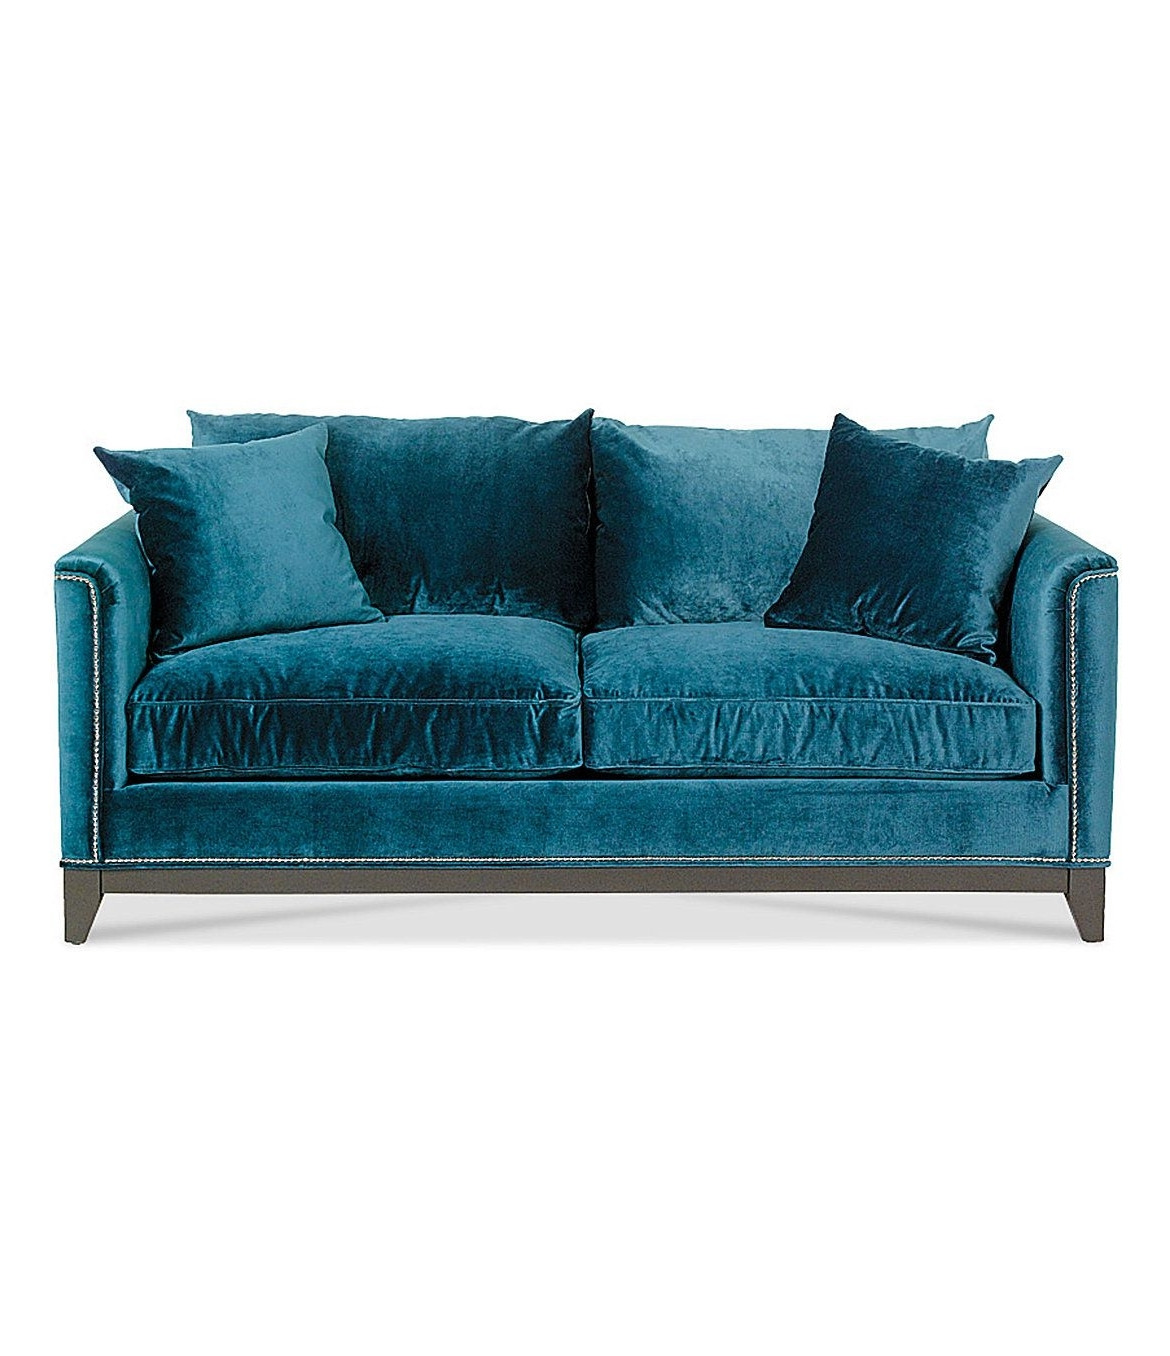 "Jonathan Louis ""mystere"" Sofa From Dillard's $699! This Just Could regarding Most Popular Dillards Sectional Sofas"